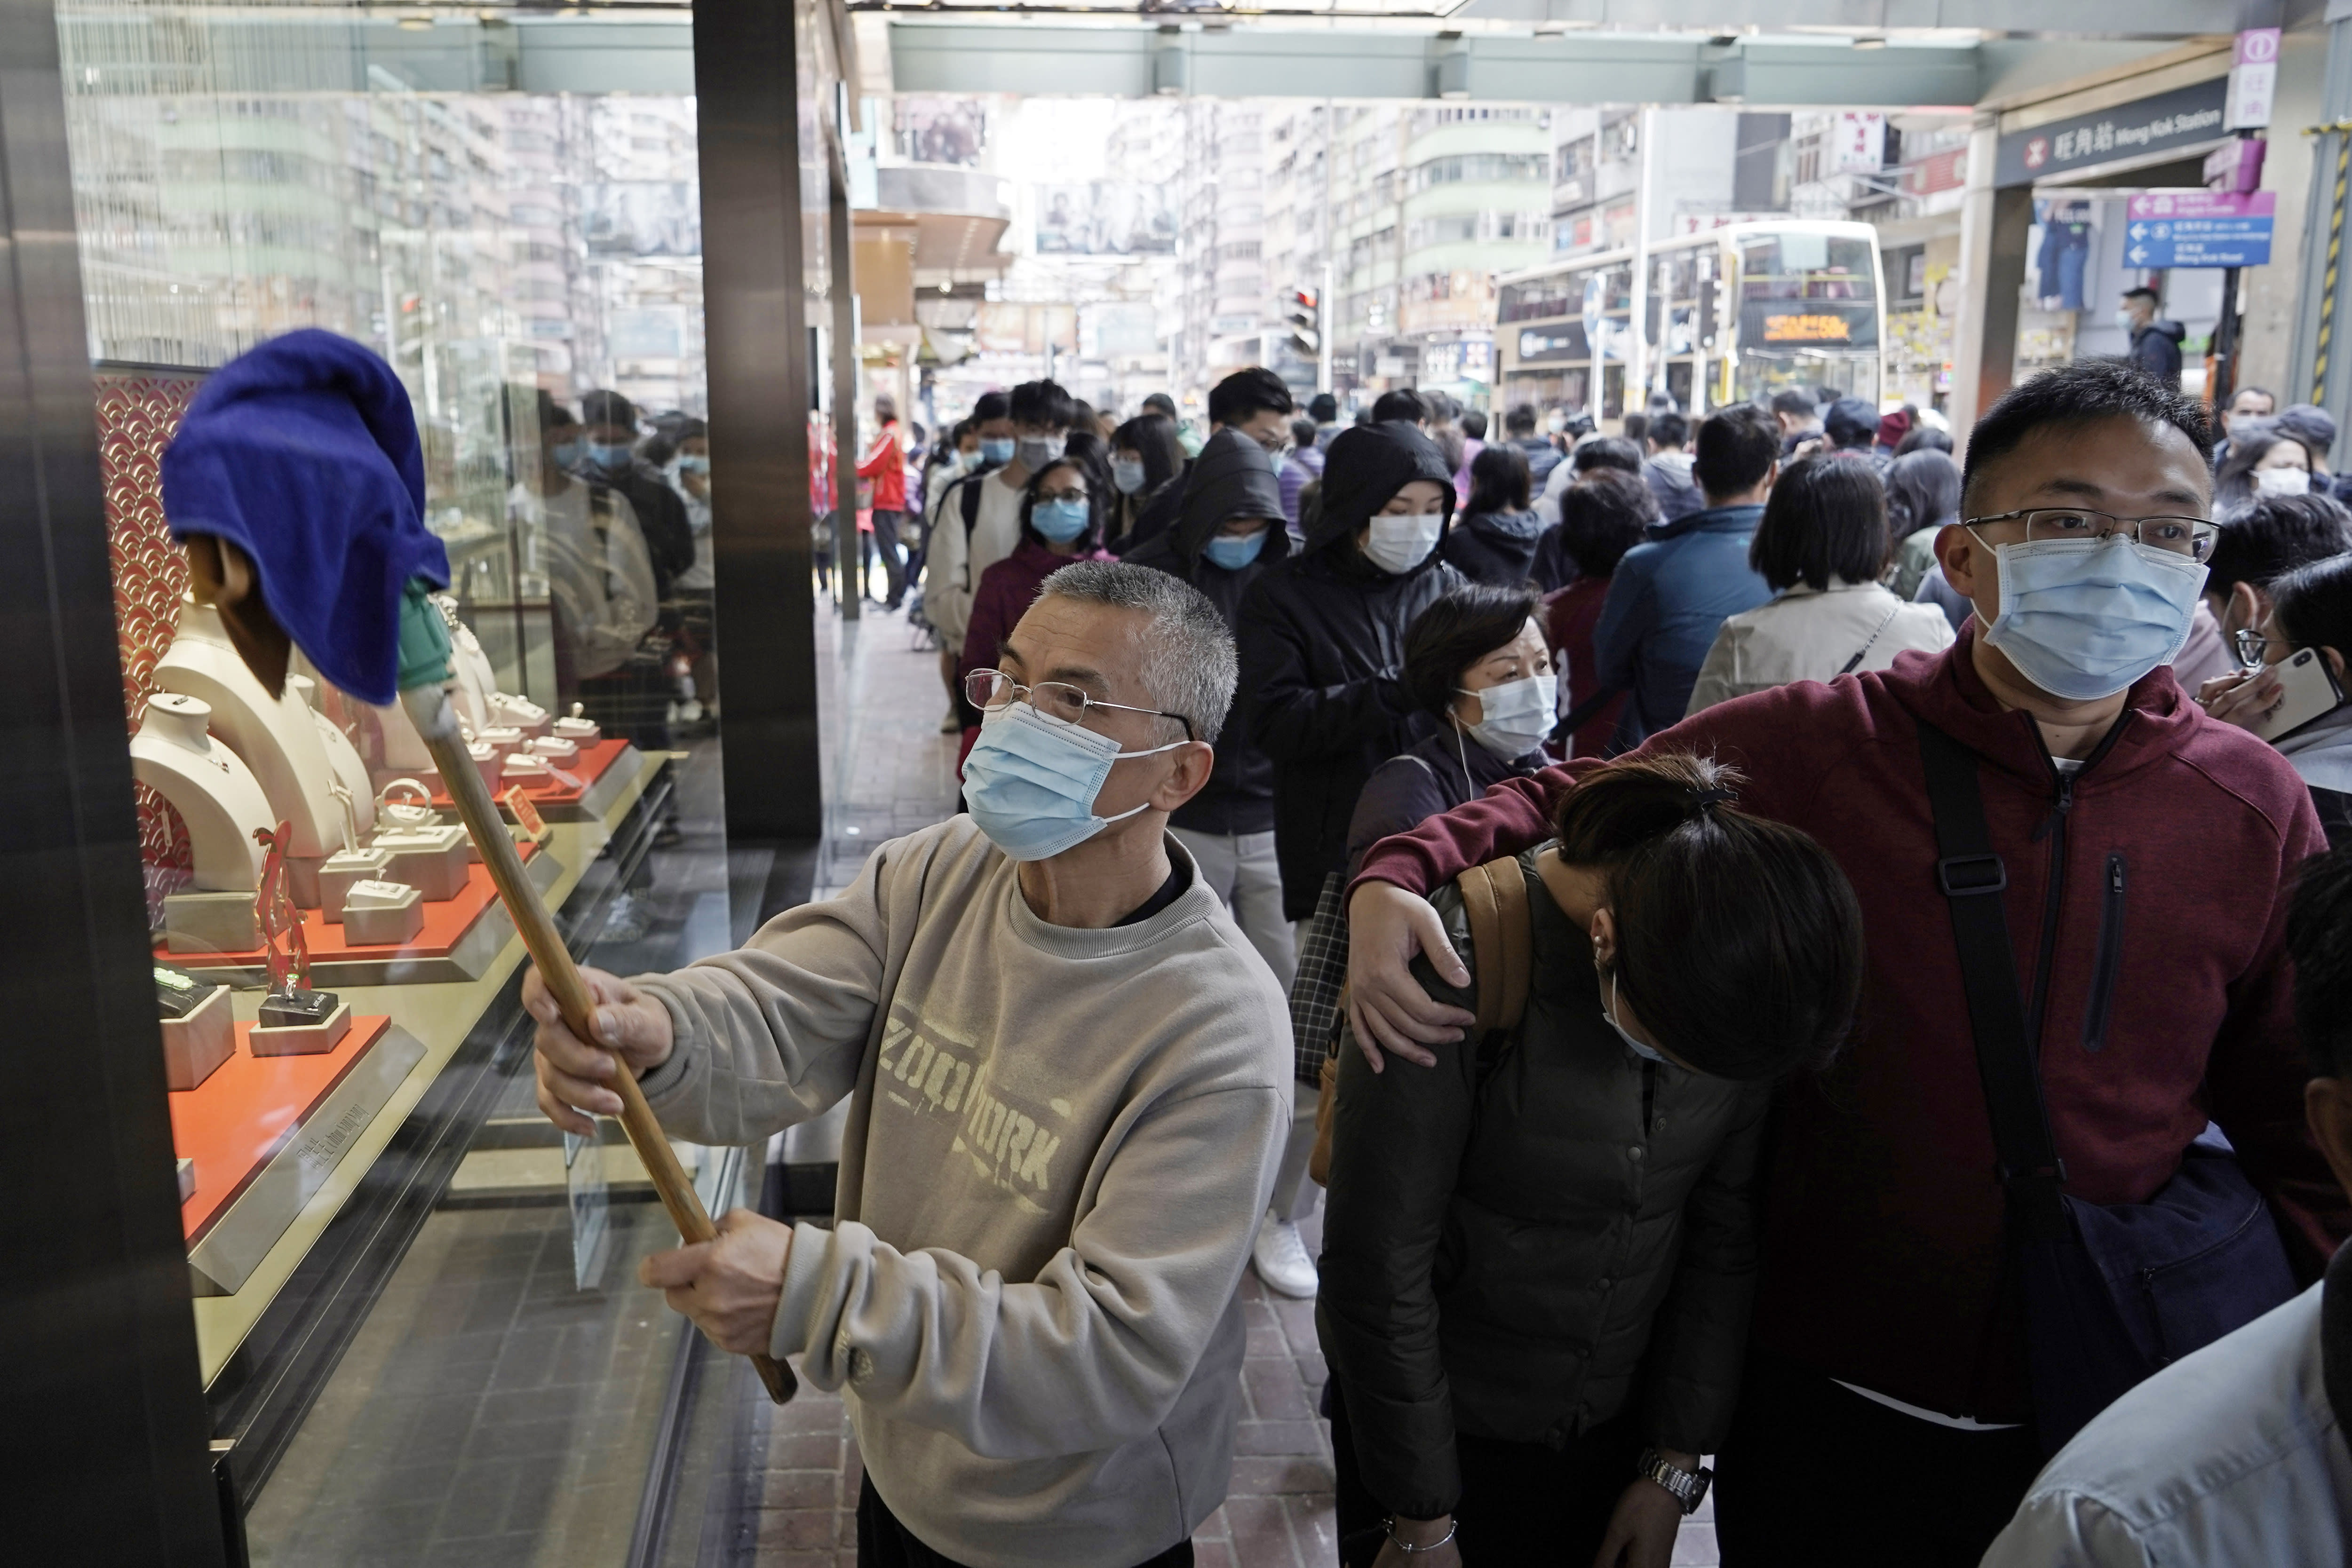 """A worker cleans a window of a jewelry shop as people queue to buy face masks in Hong Kong, Saturday, Feb, 1, 2020. China's death toll from a new virus has risen over 250 and a World Health Organization official says other governments need to prepare for""""domestic outbreak control"""" if the disease spreads. (AP Photo/Kin Cheung)"""